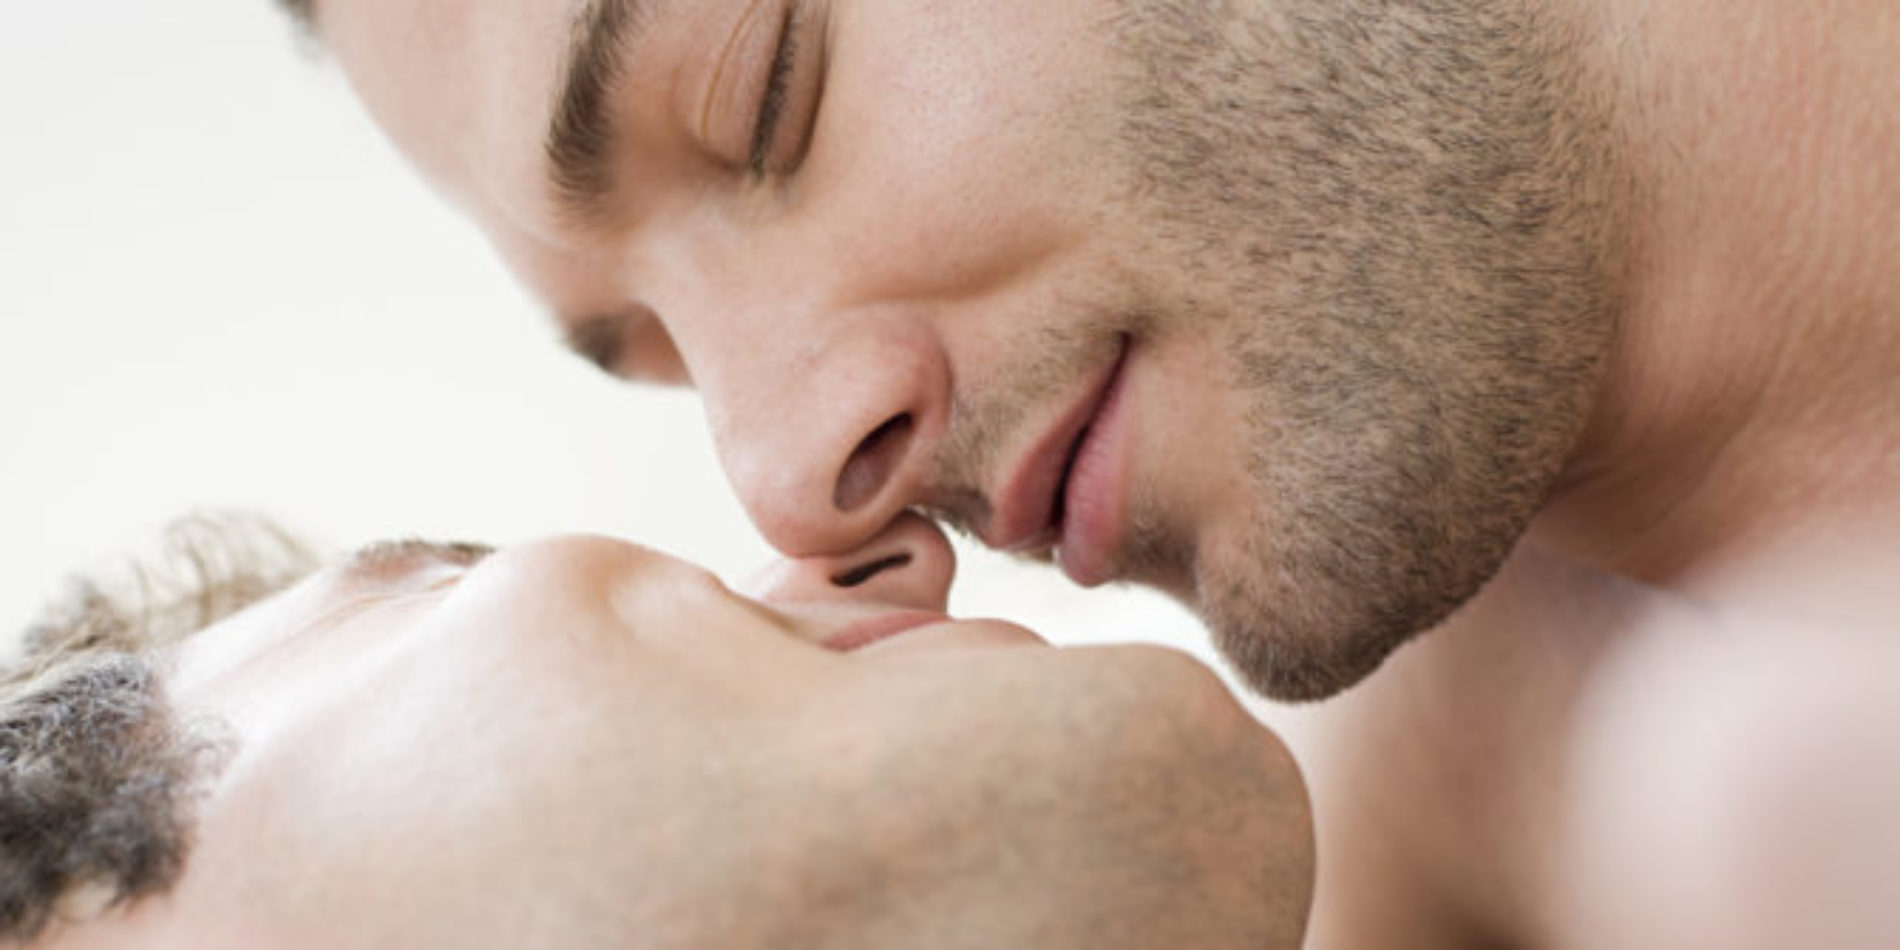 More and more people say they prefer to have sex before the first date, study finds